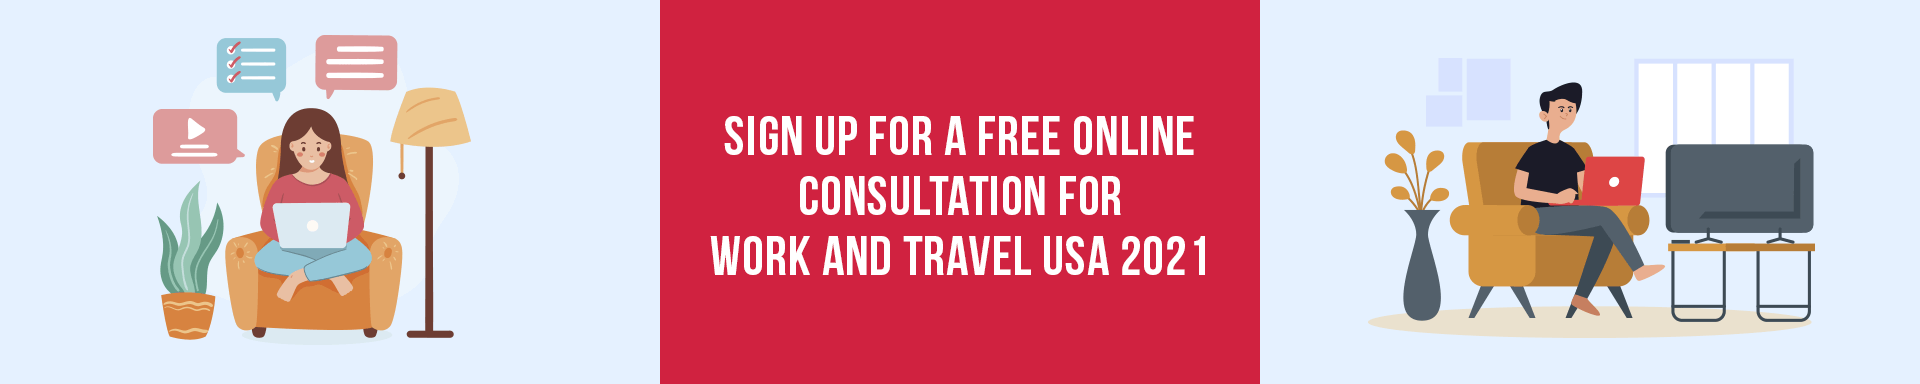 Free online consultation